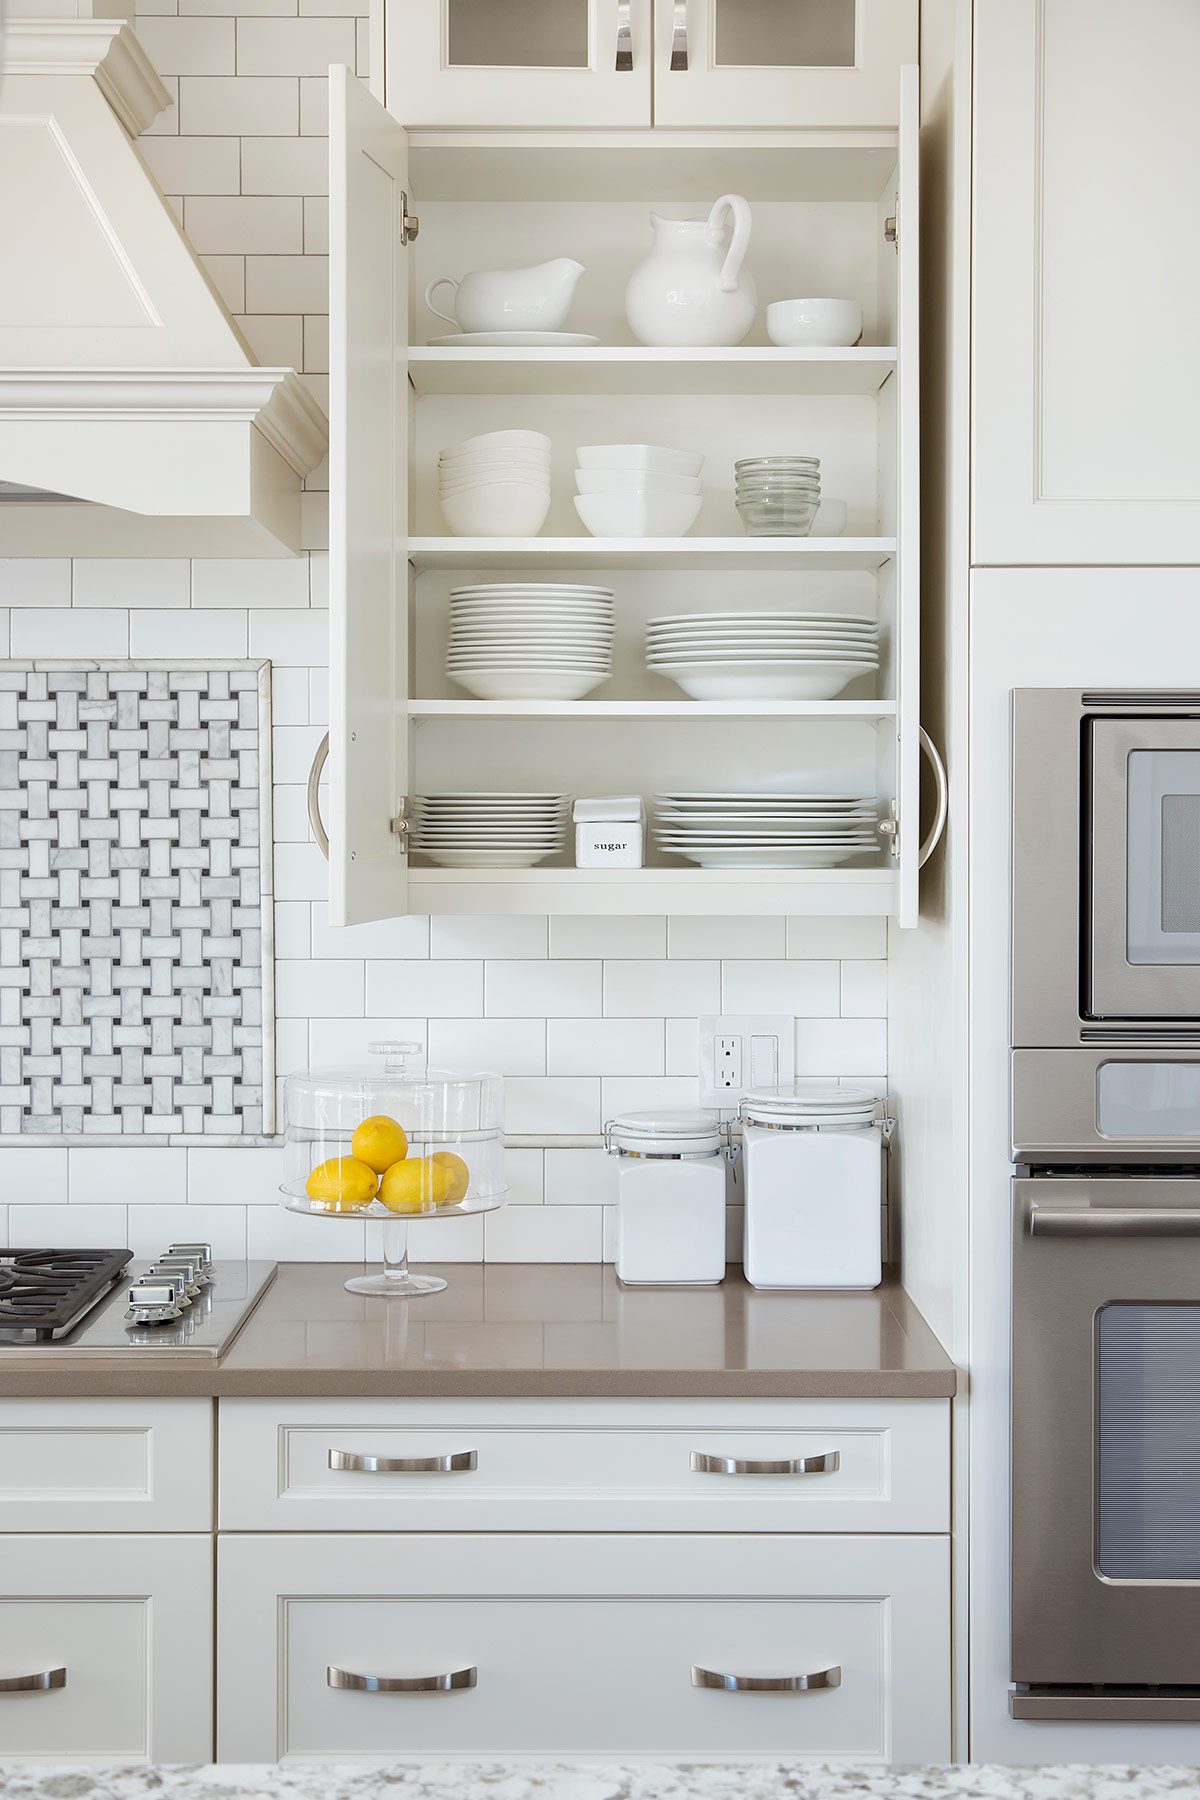 Kitchen Cabinets Cost Per Linear Foot: The Top Kitchen Trends Of 2018, According To Houzz